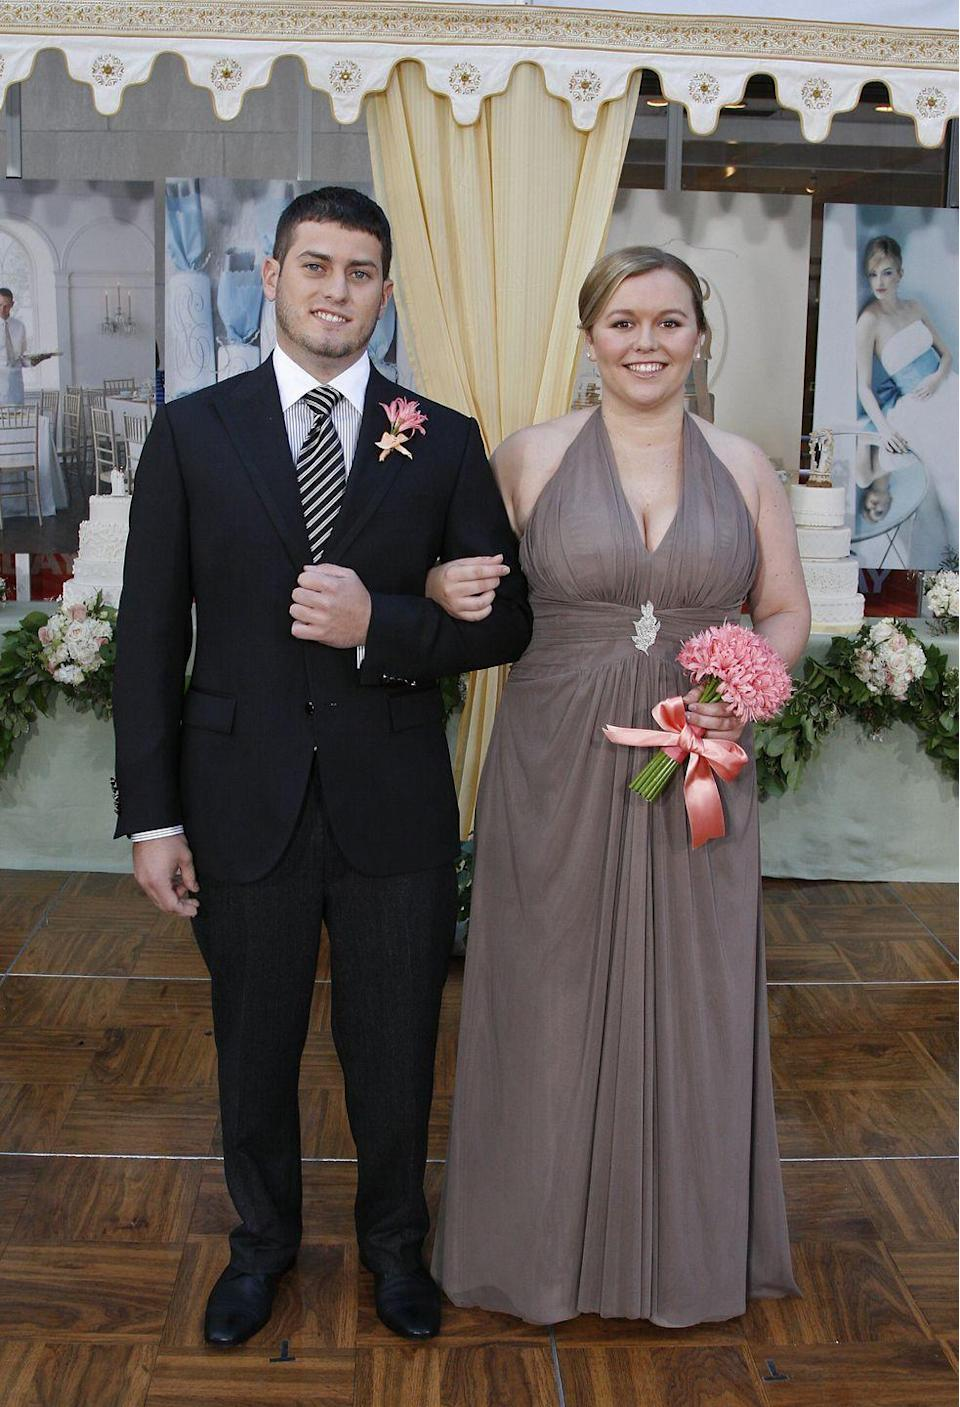 <p>Halter tops started to take over bridal parties in the mid-2000s. The style was generally seen in a chiffon fabric with front pleating. </p>